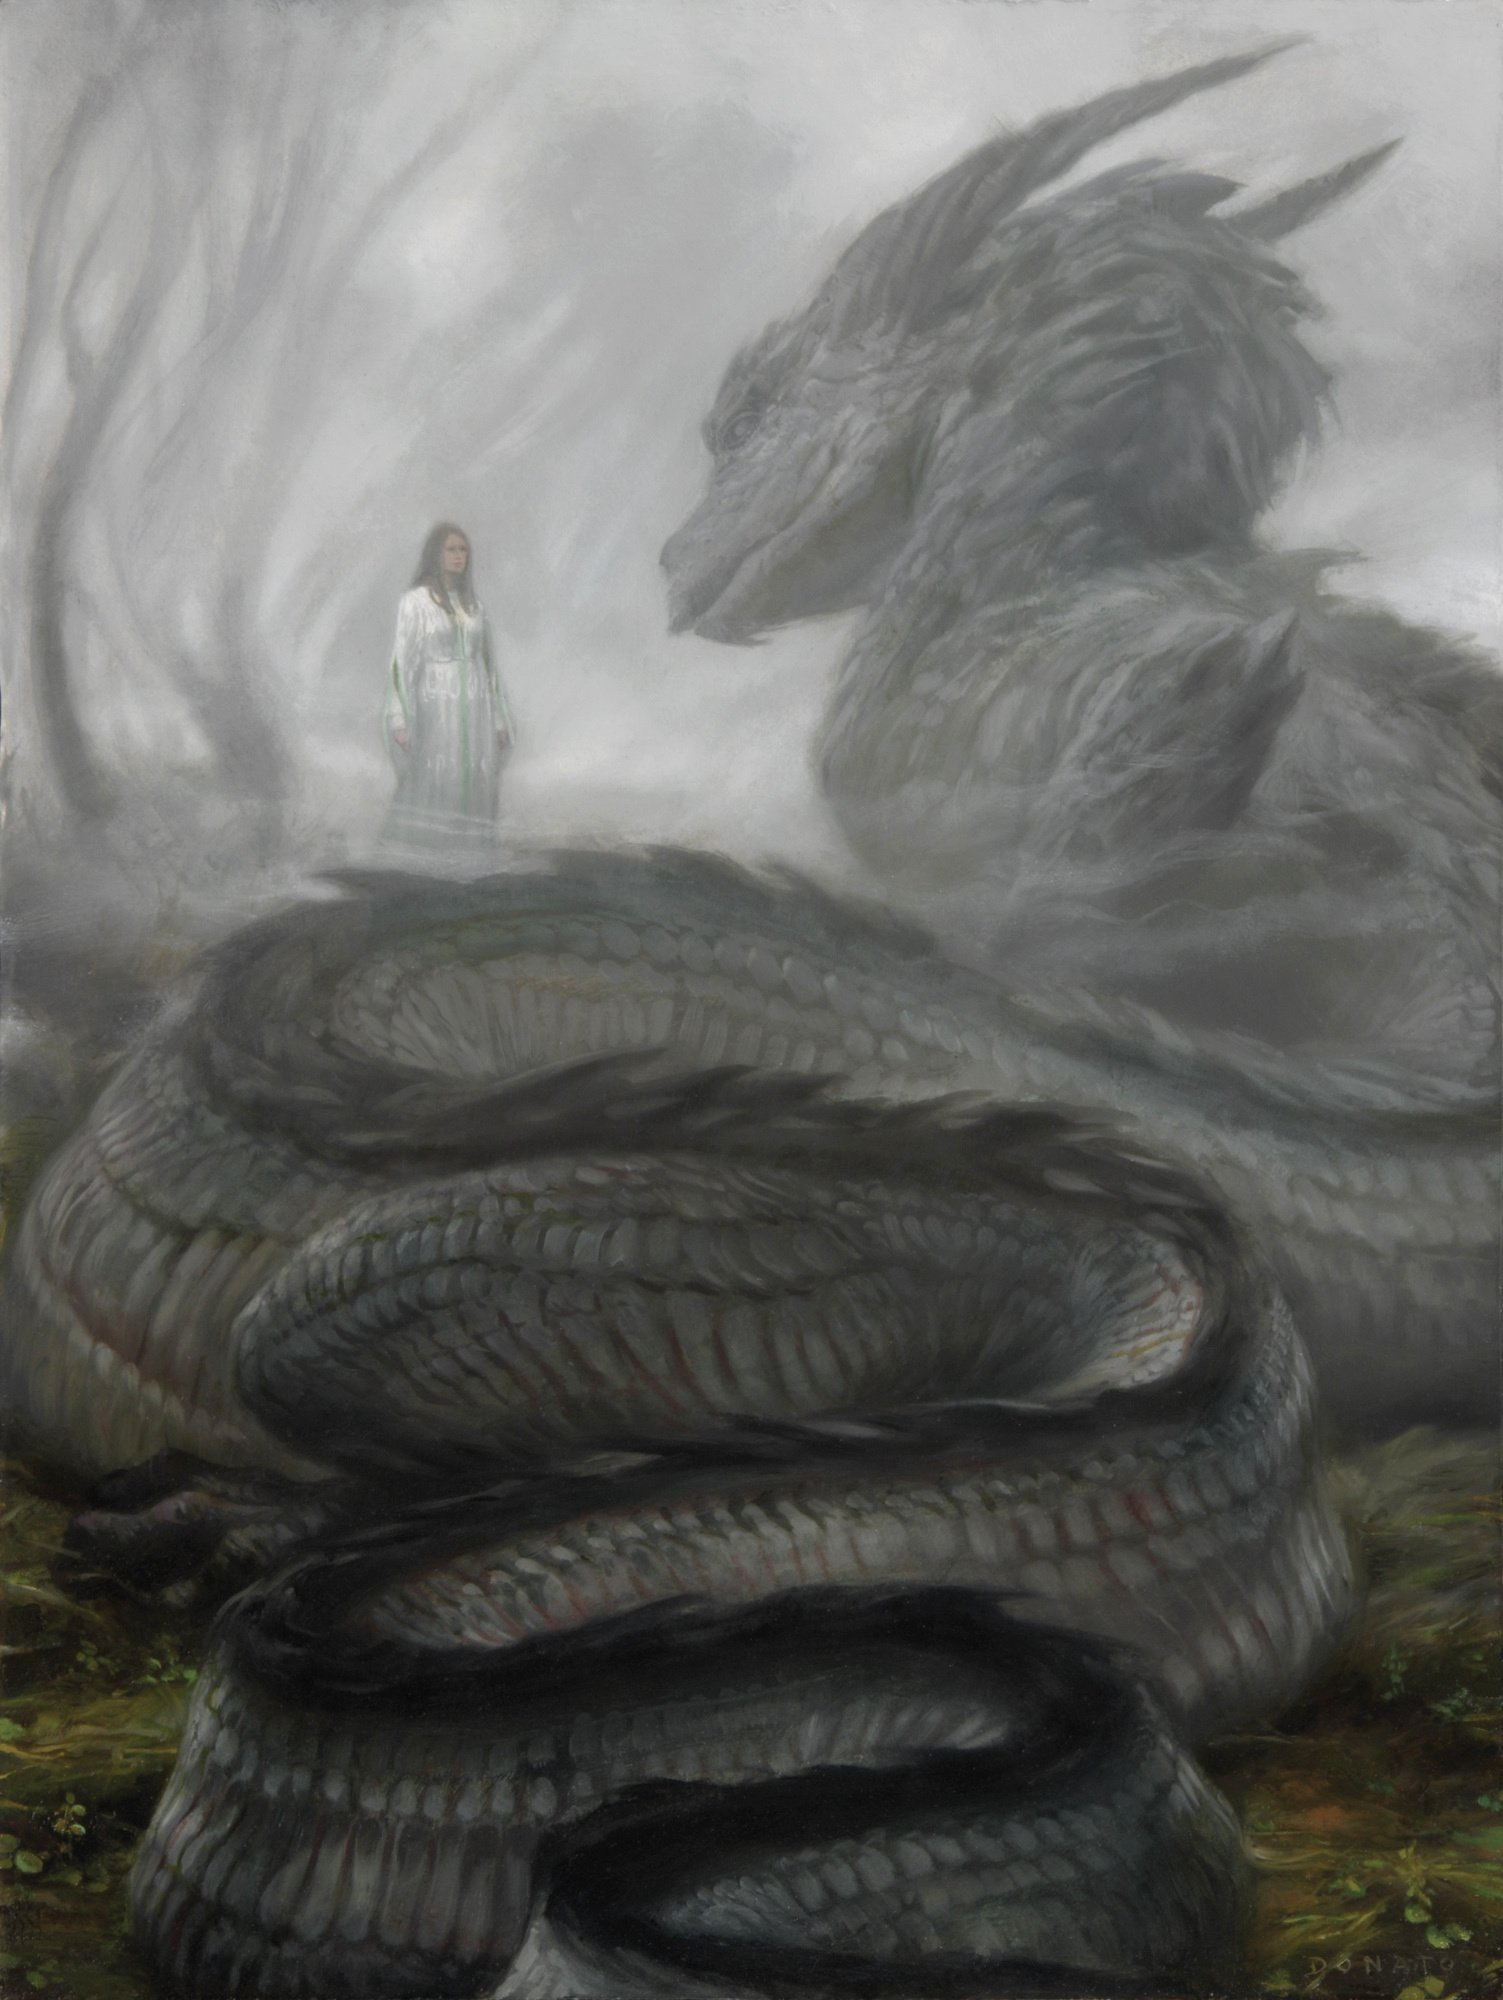 "Niënor and Glaurung - Forgetfulness 24"" x 18""  Oil on Panel  2012 from J.R.R. Tolkien's The Silmarillion private collection"